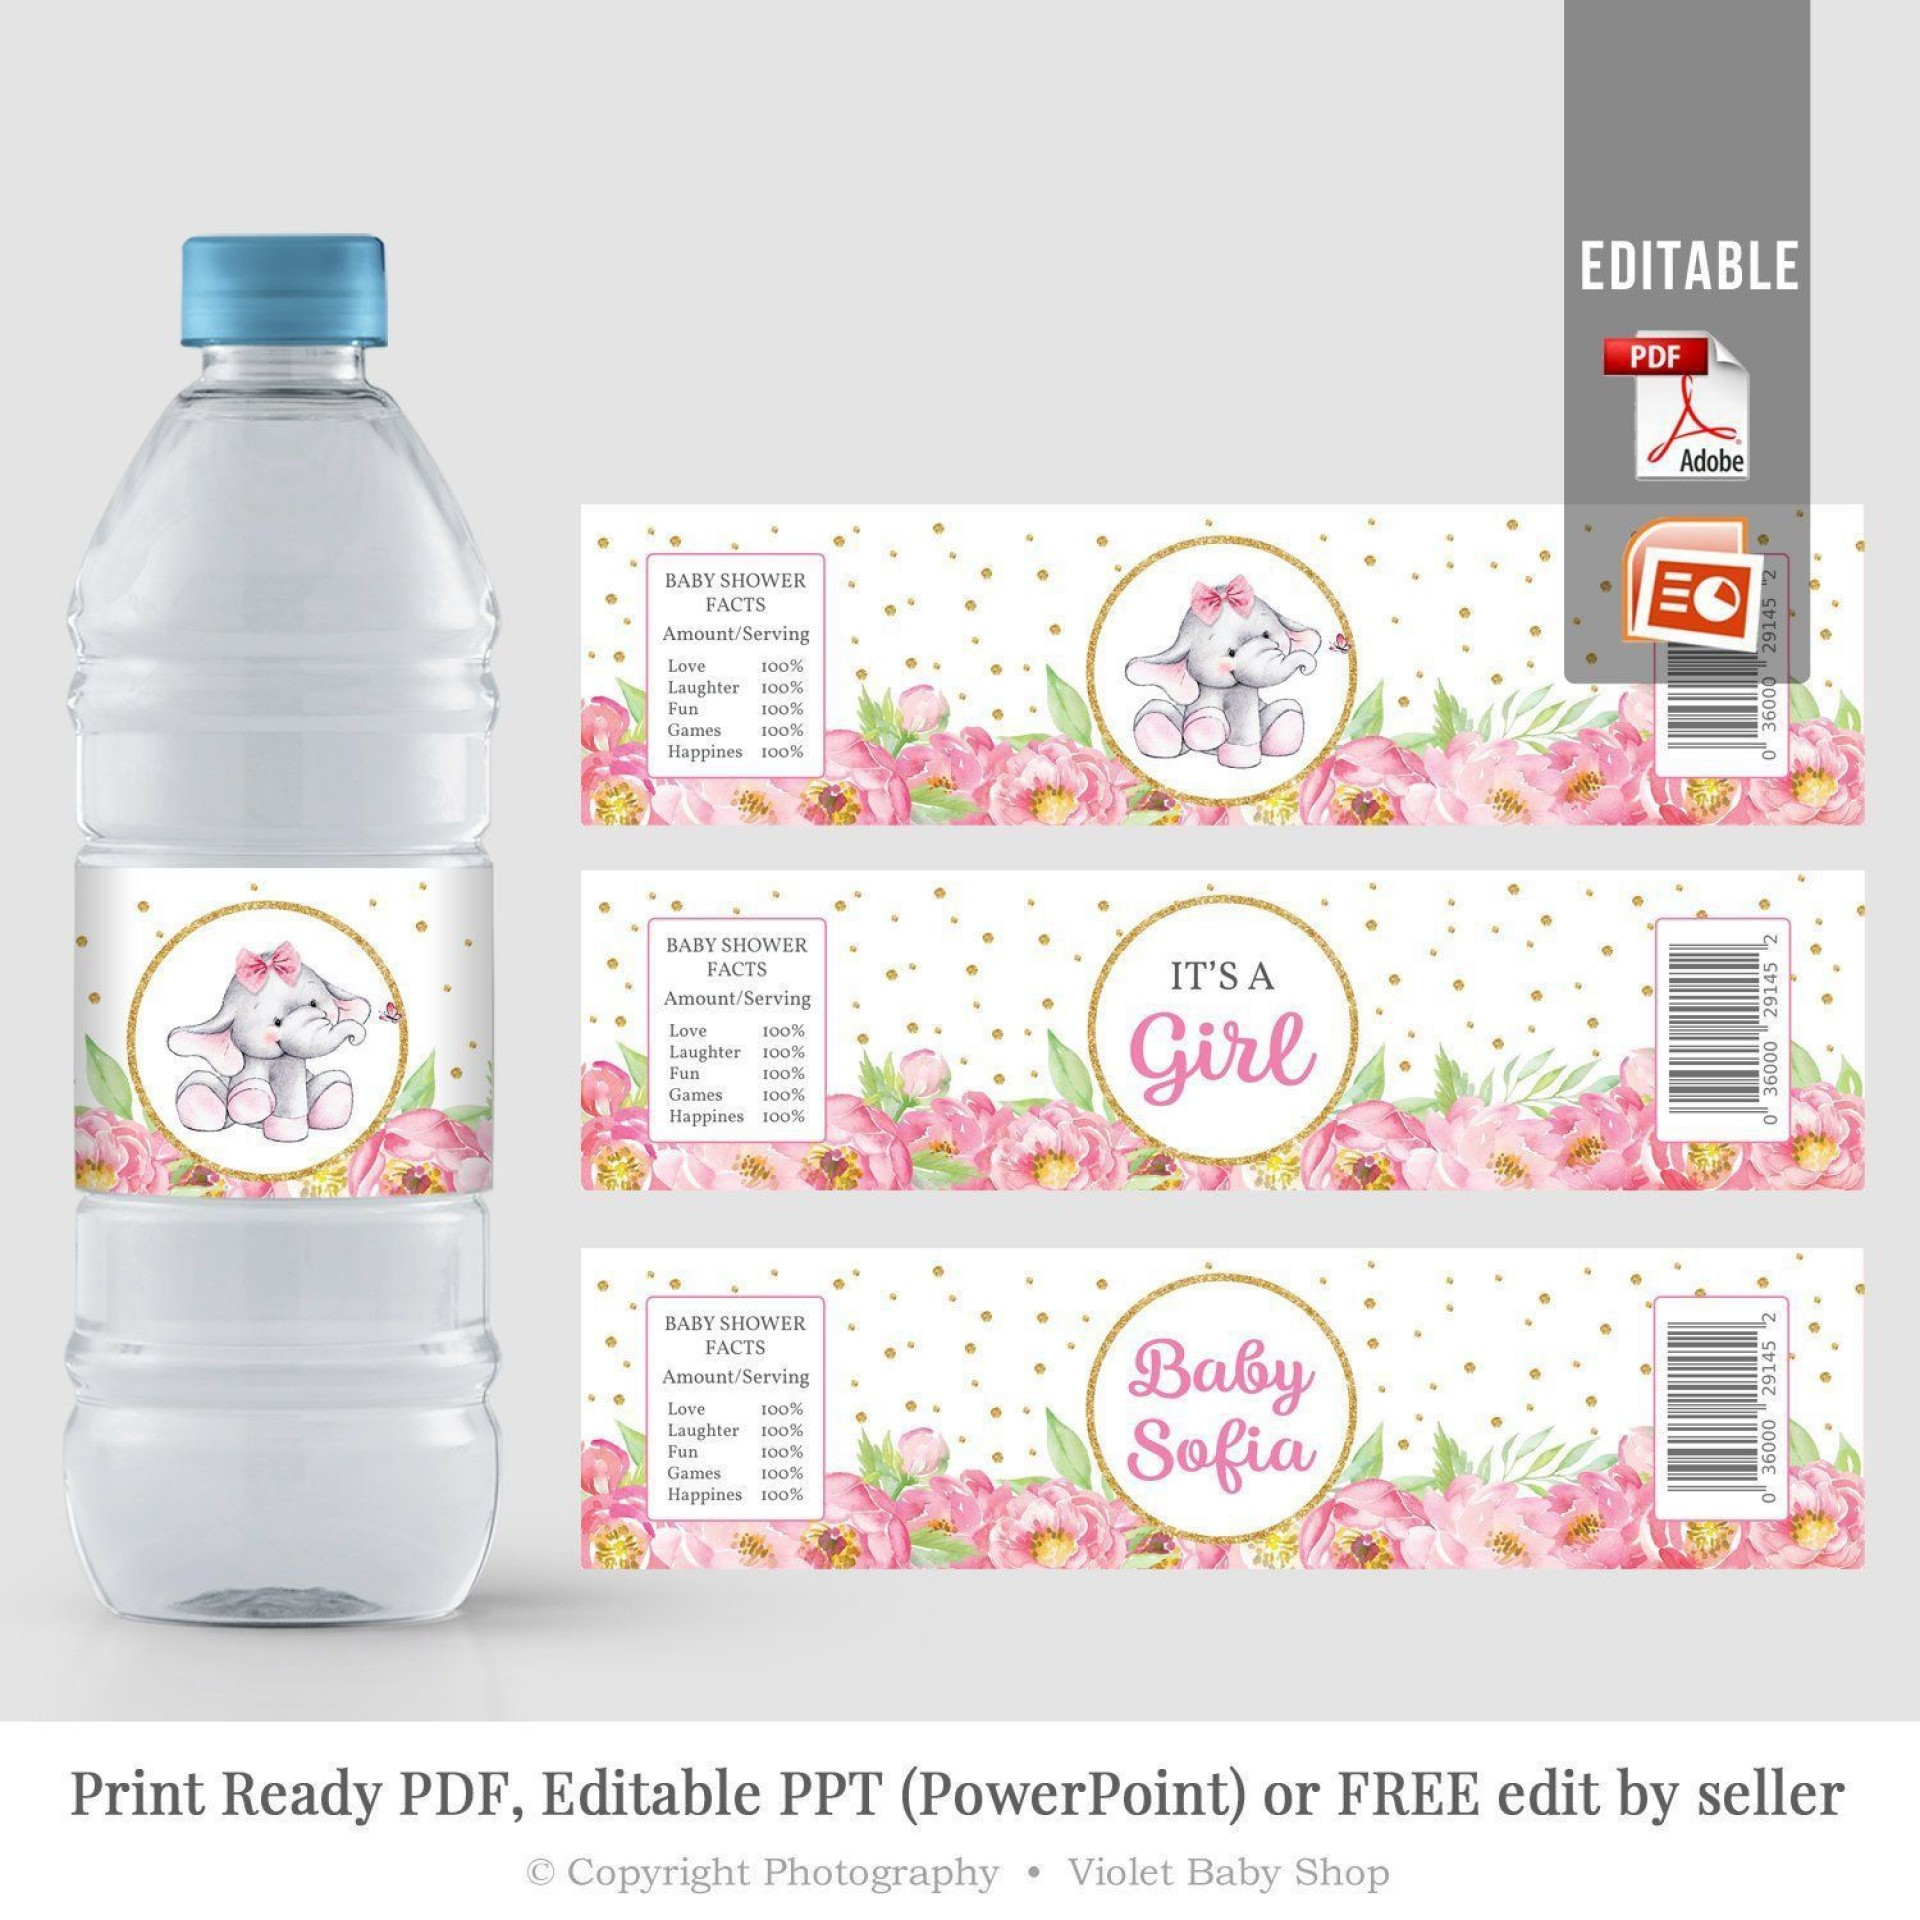 000 Shocking Water Bottle Label Template Free Picture  Word Superhero Photoshop1920